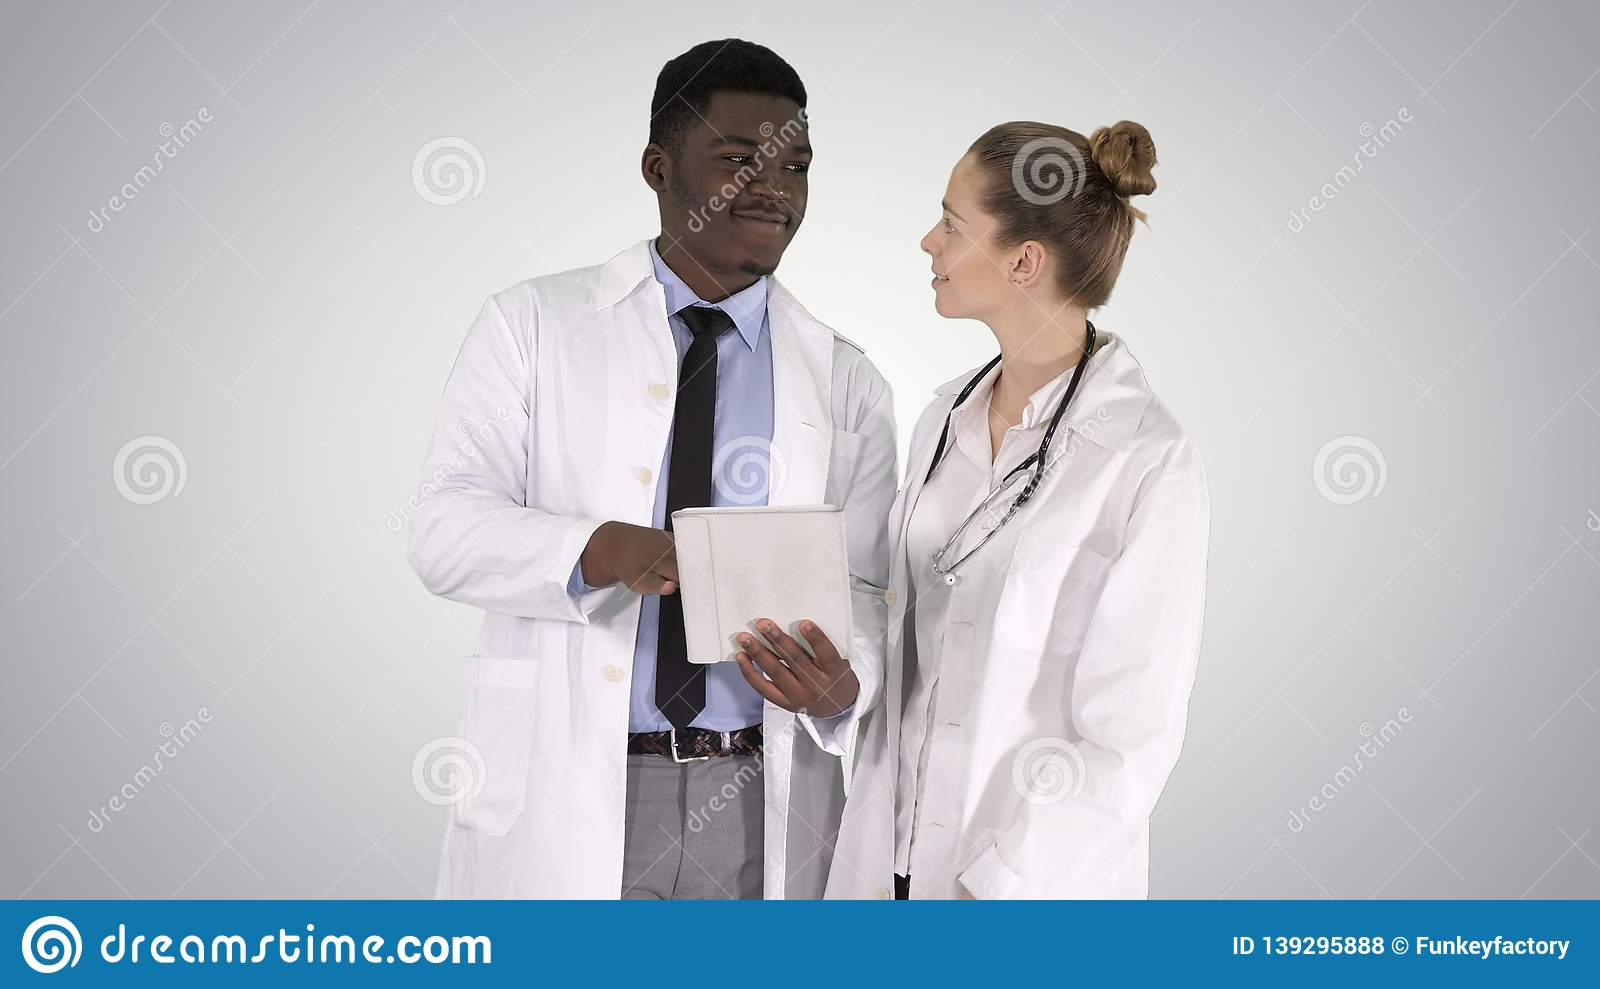 Intellectual healthcare professional afro american doctor with collegue using digital tablet on gradient background.